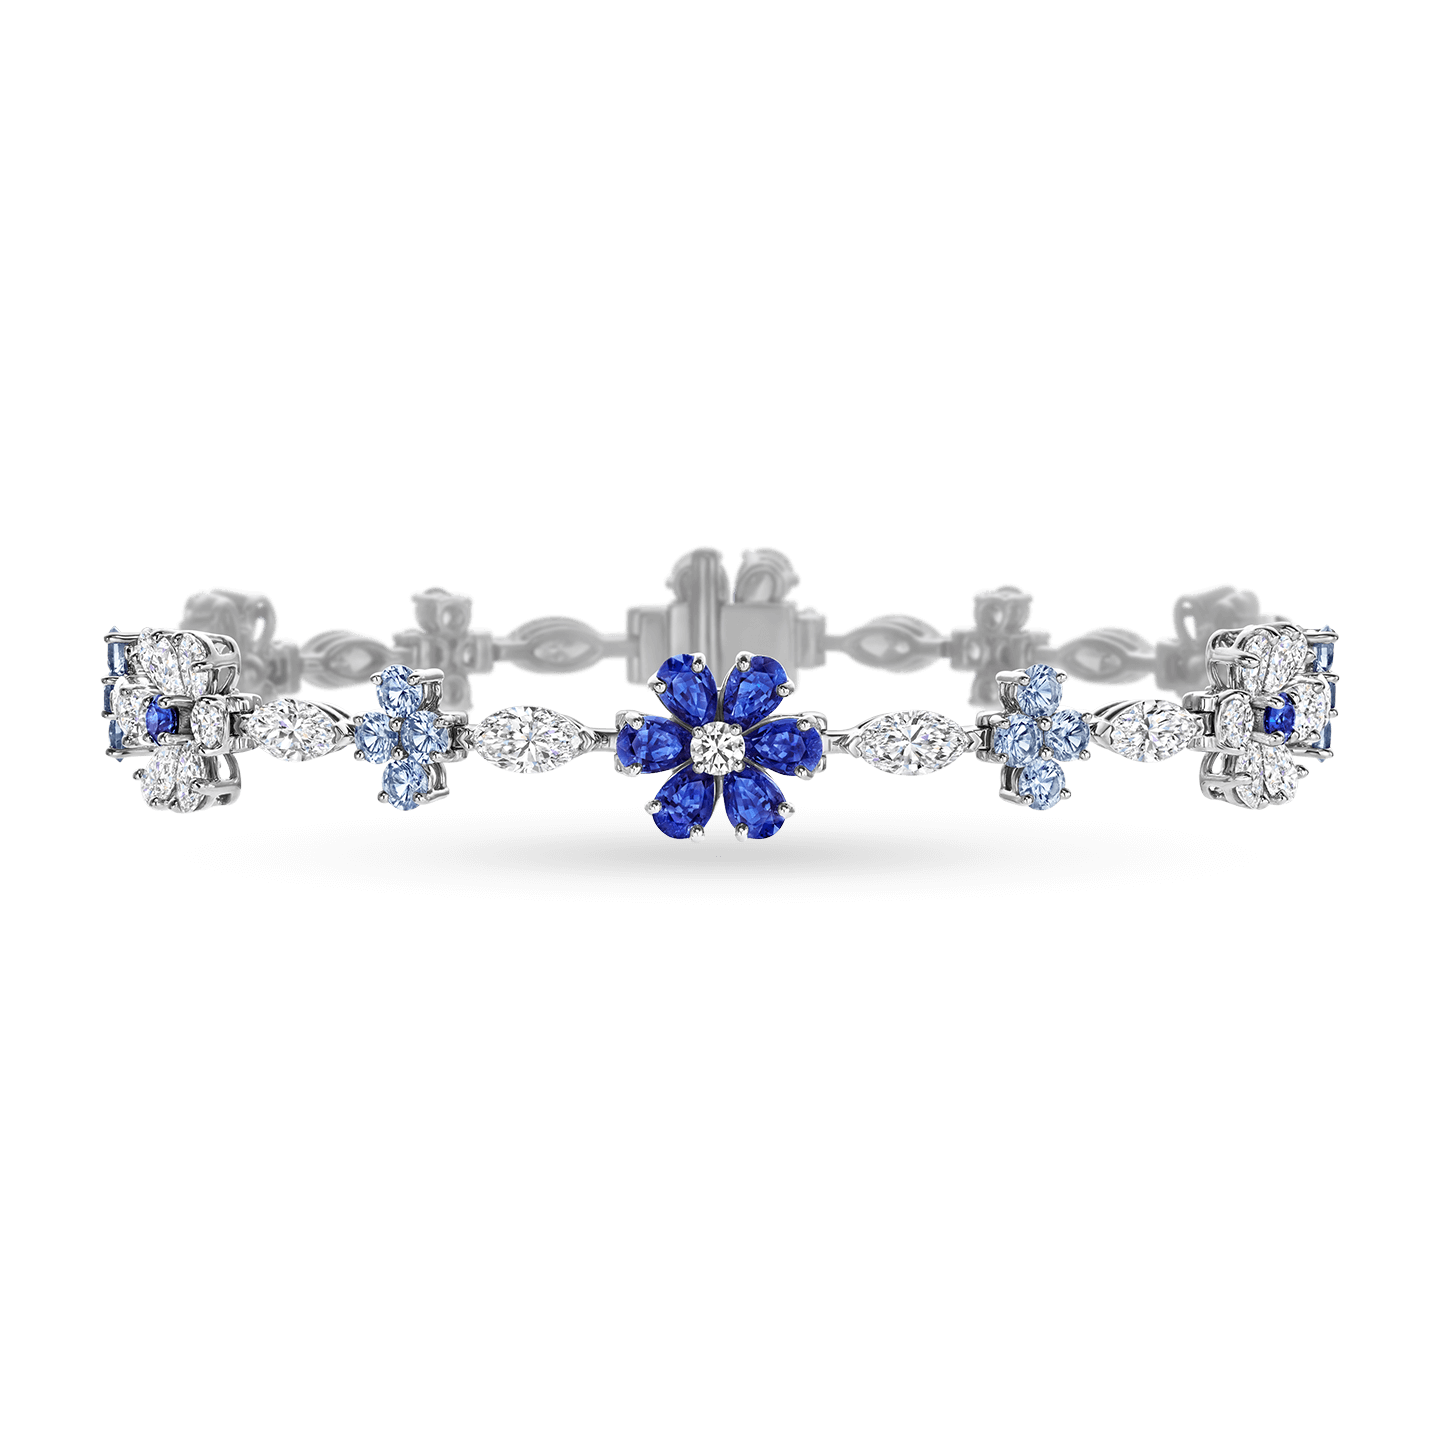 Forget-Me-Not Sapphire and Diamond Bracelet, Product Image 1